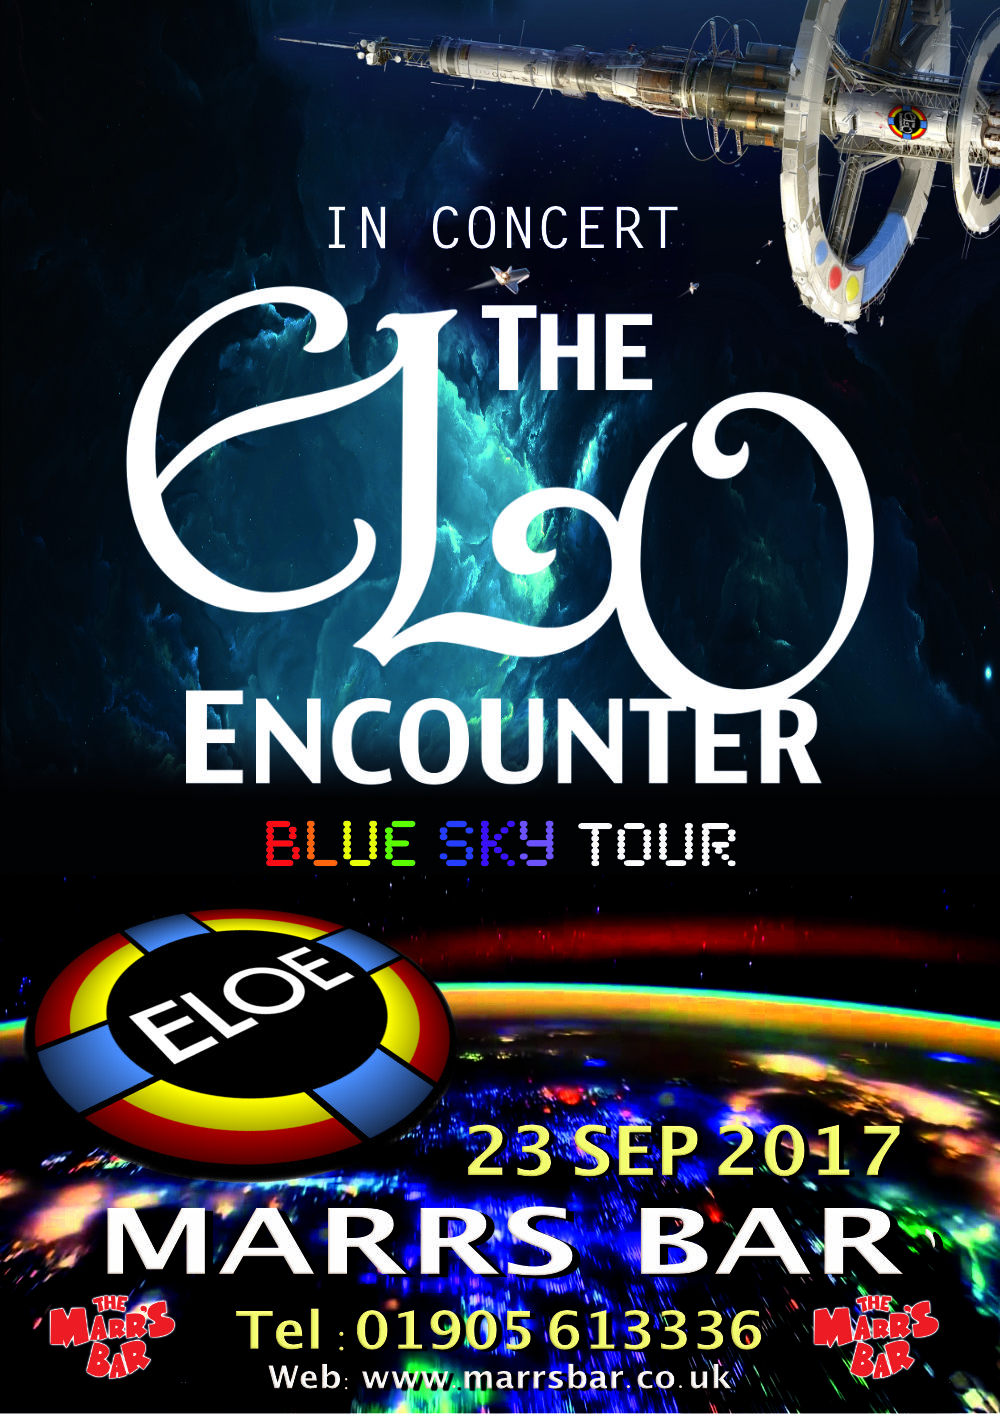 Marr's Bar - ELO Encounter Poster